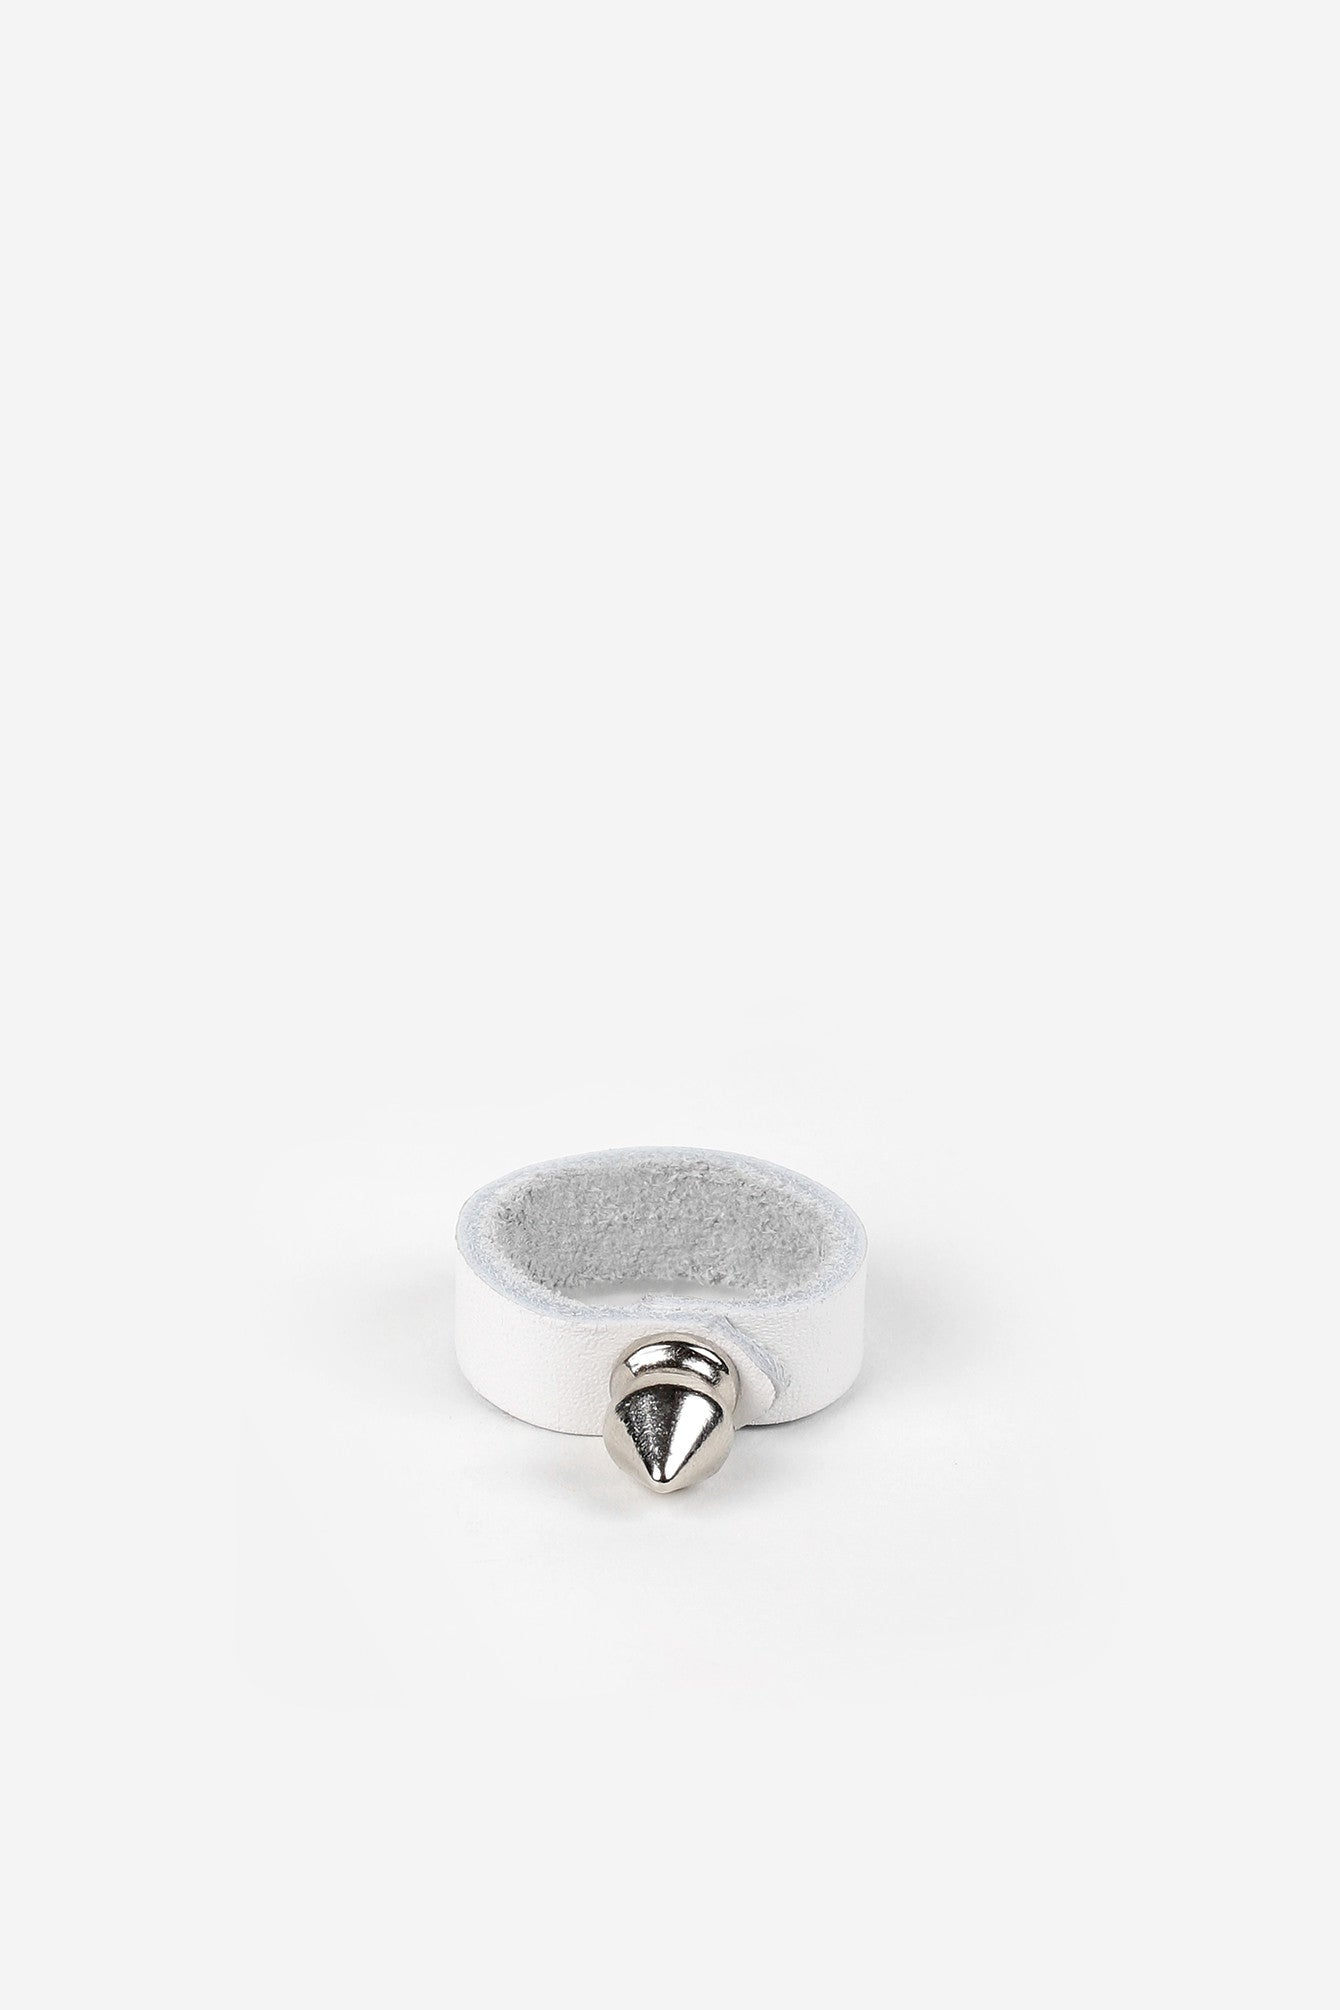 Sid Studded Ring - JAKIMAC  - 3